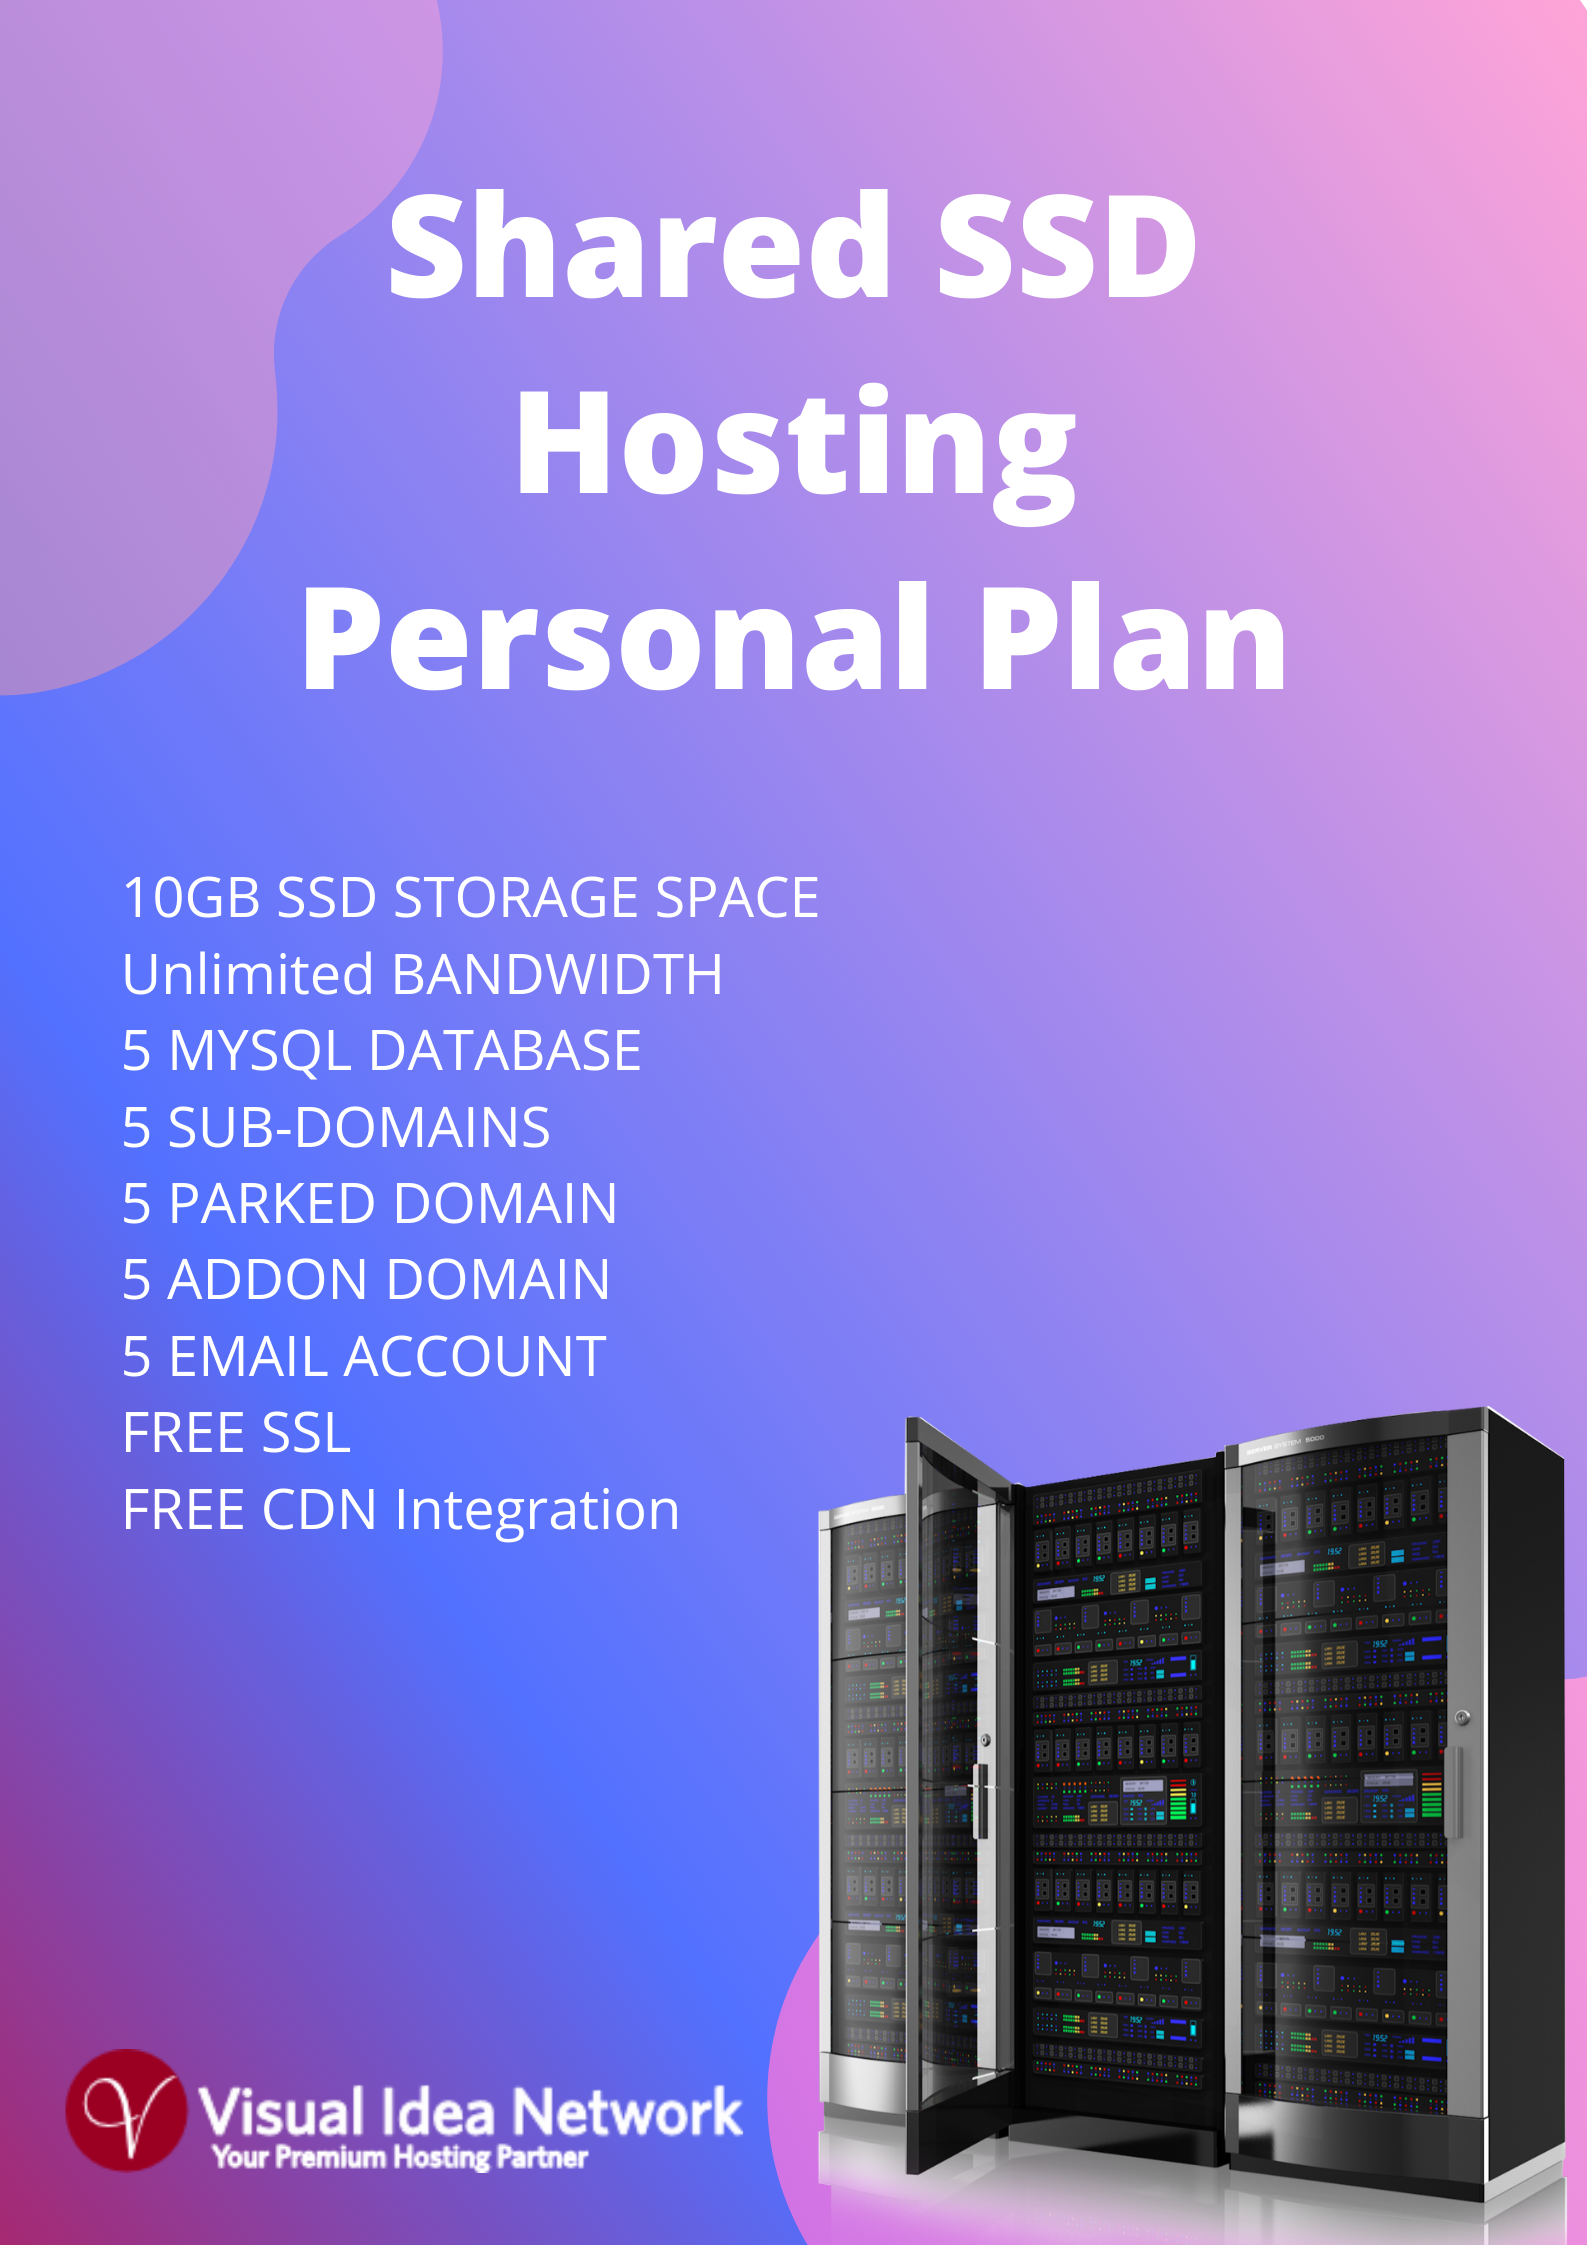 Shared SSD Personal Hosting Plan